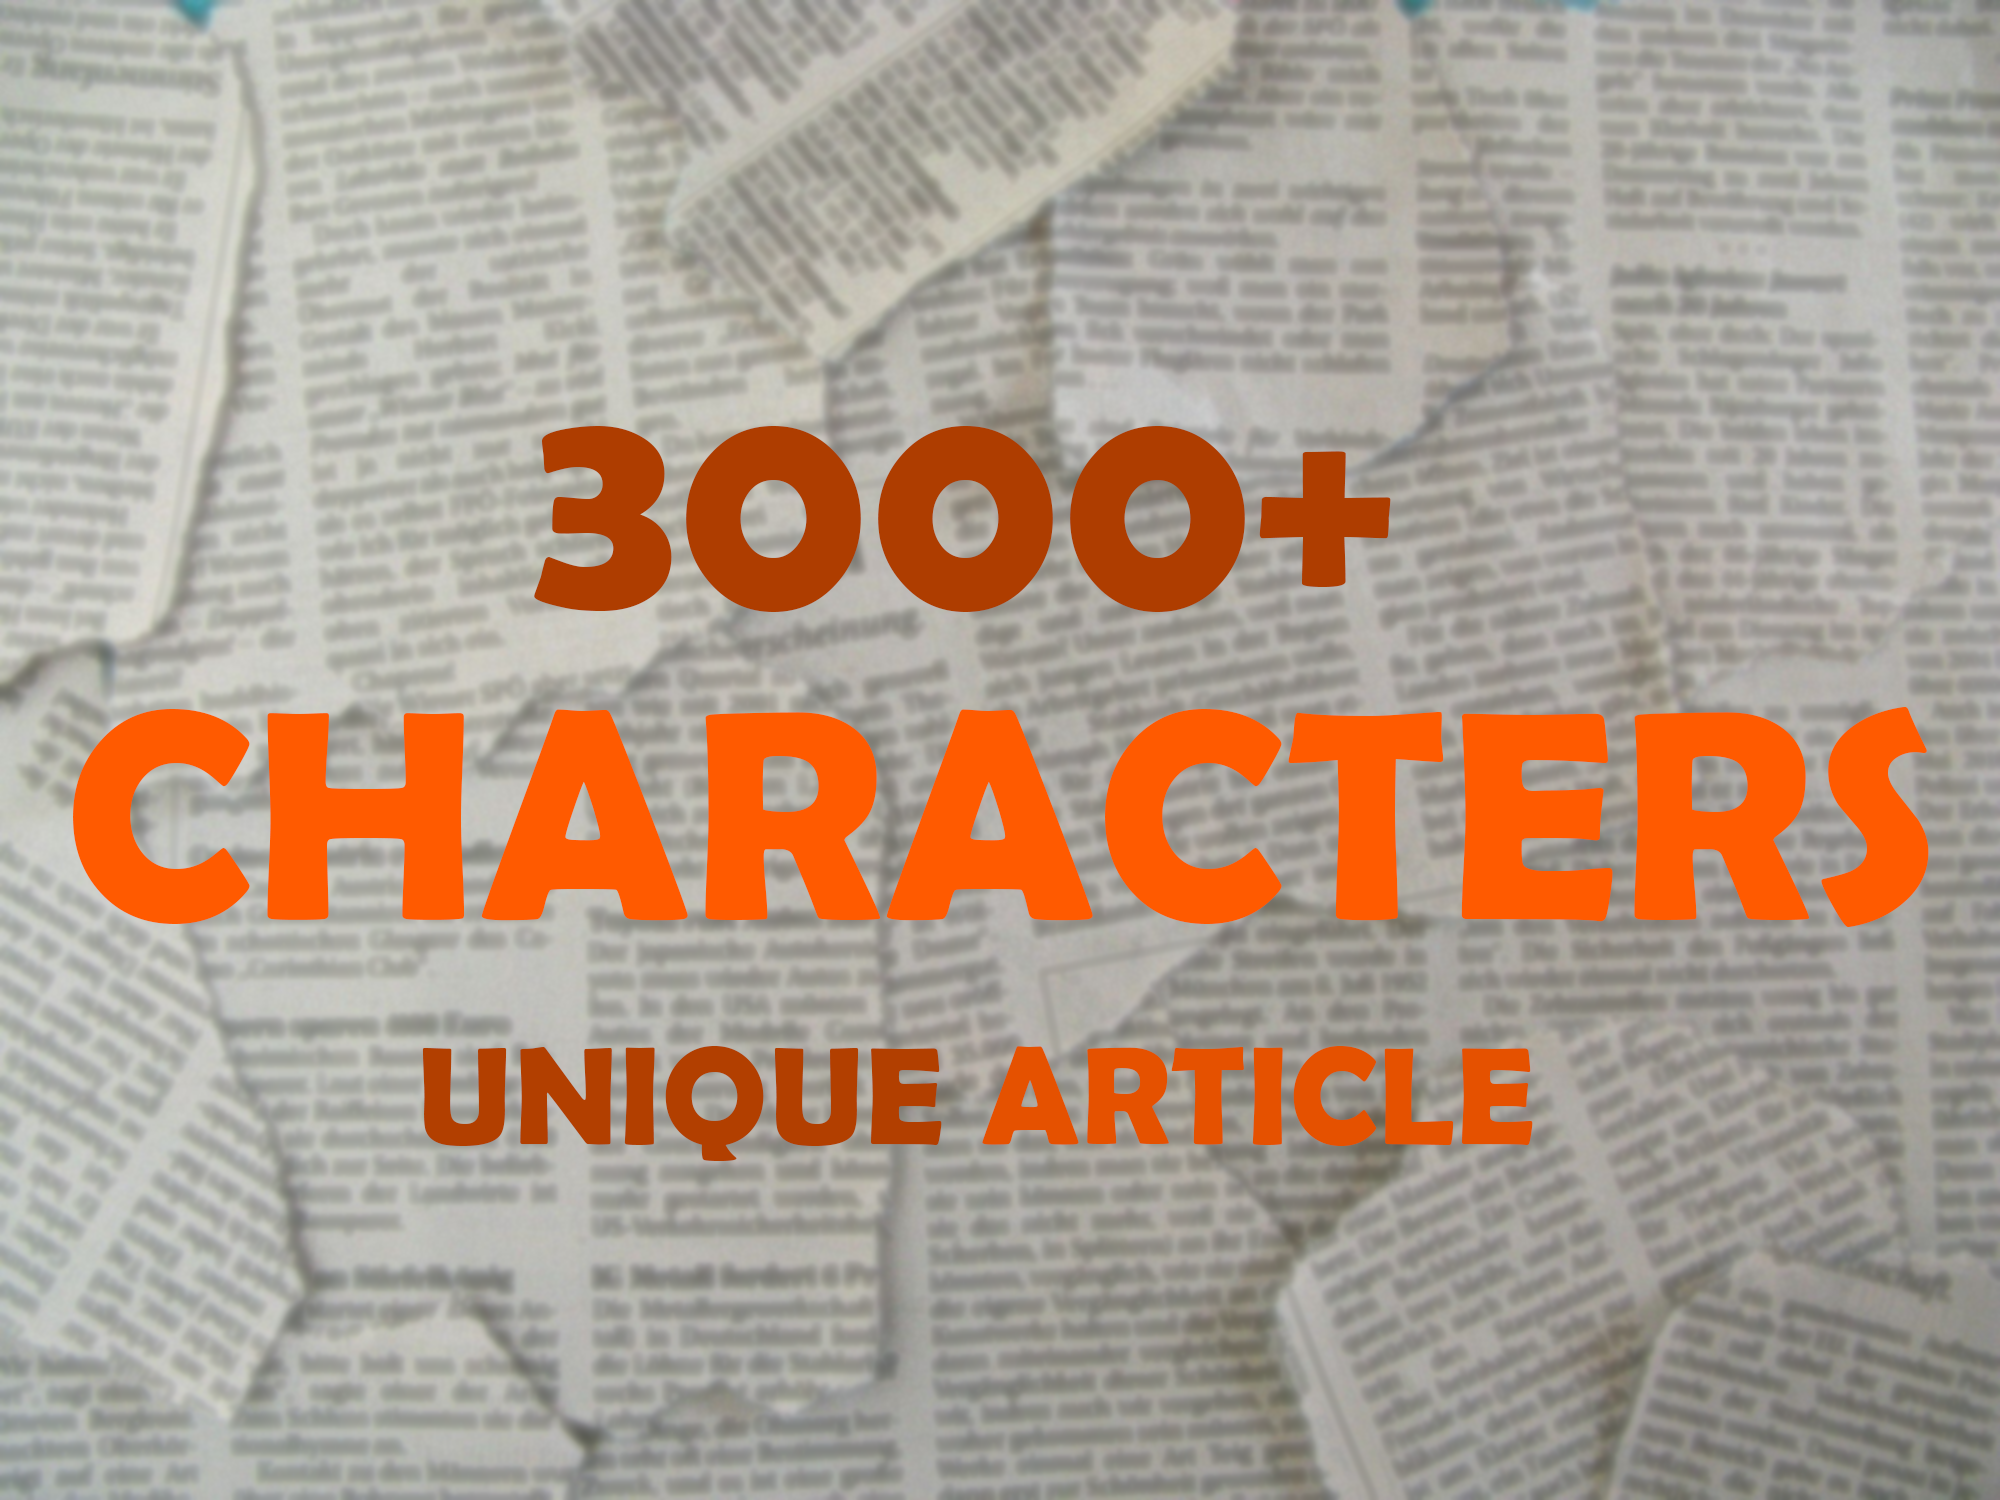 3000+ Characters Unique Valuable SEO Articles